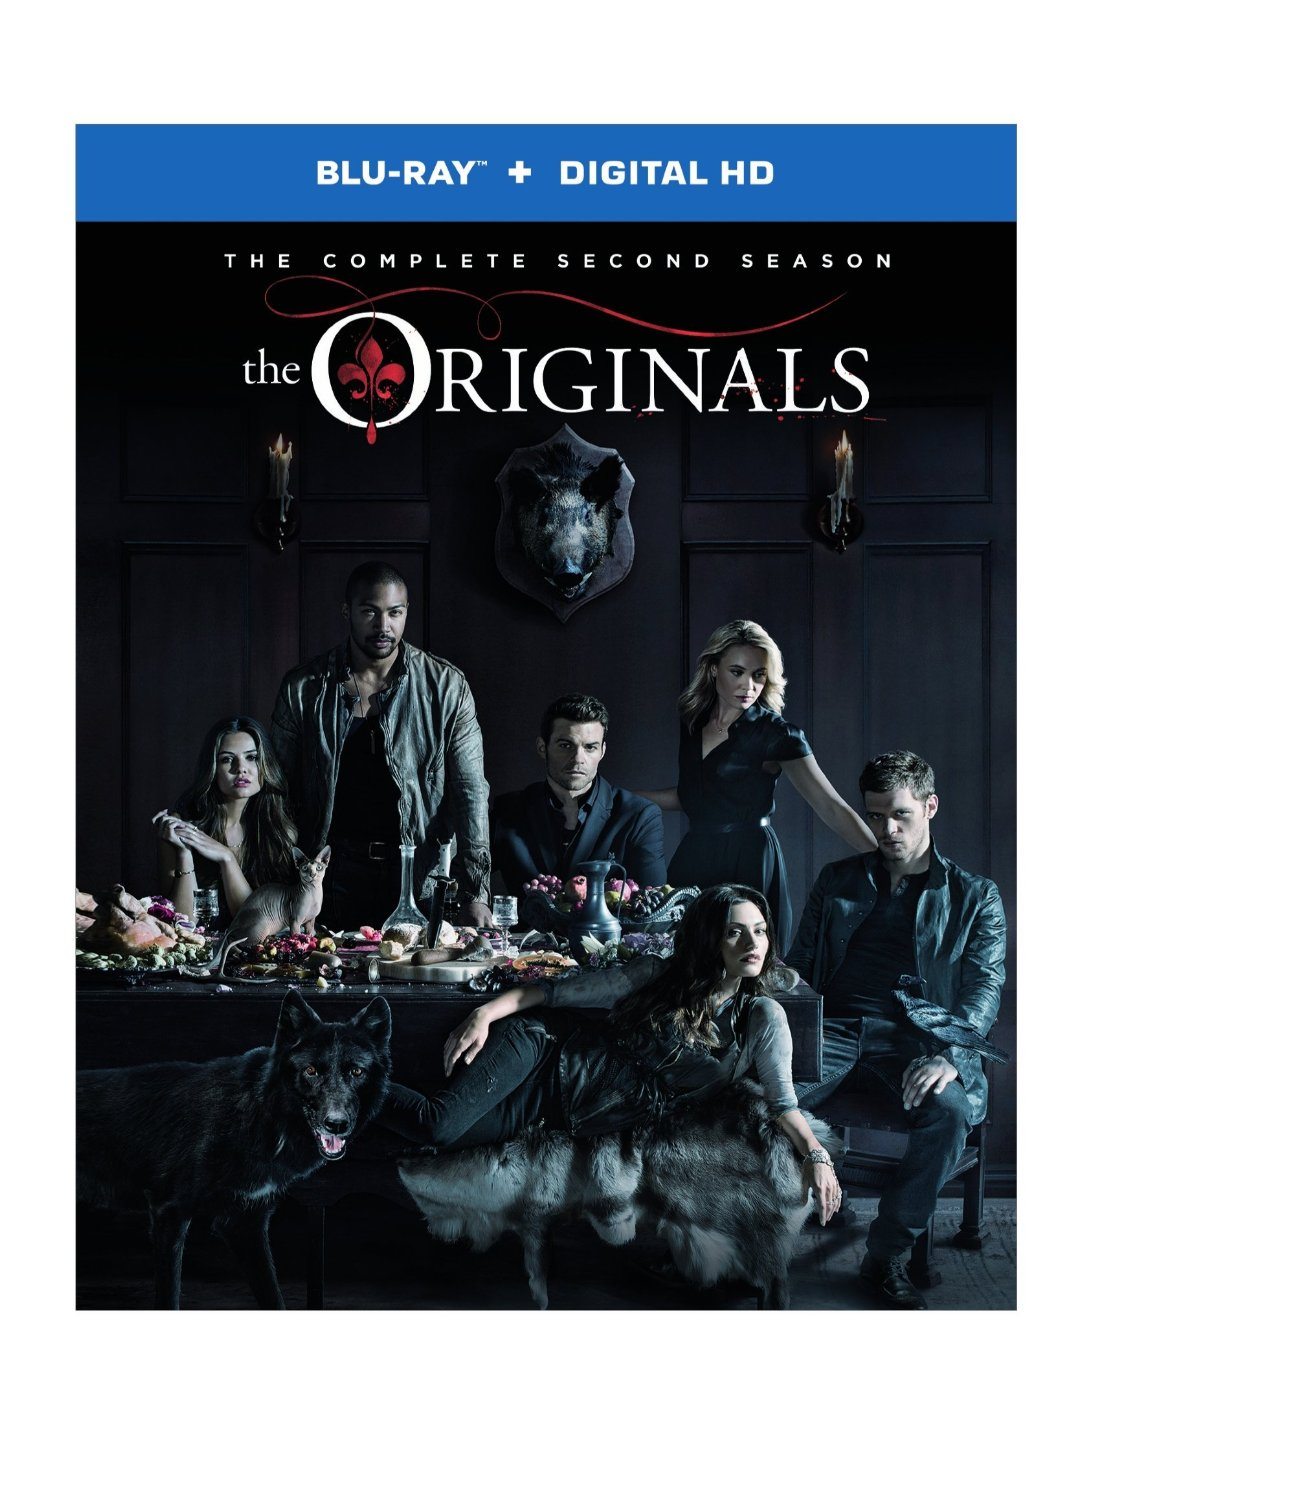 The Originals [TV Series] - The Originals: The Complete Second Season